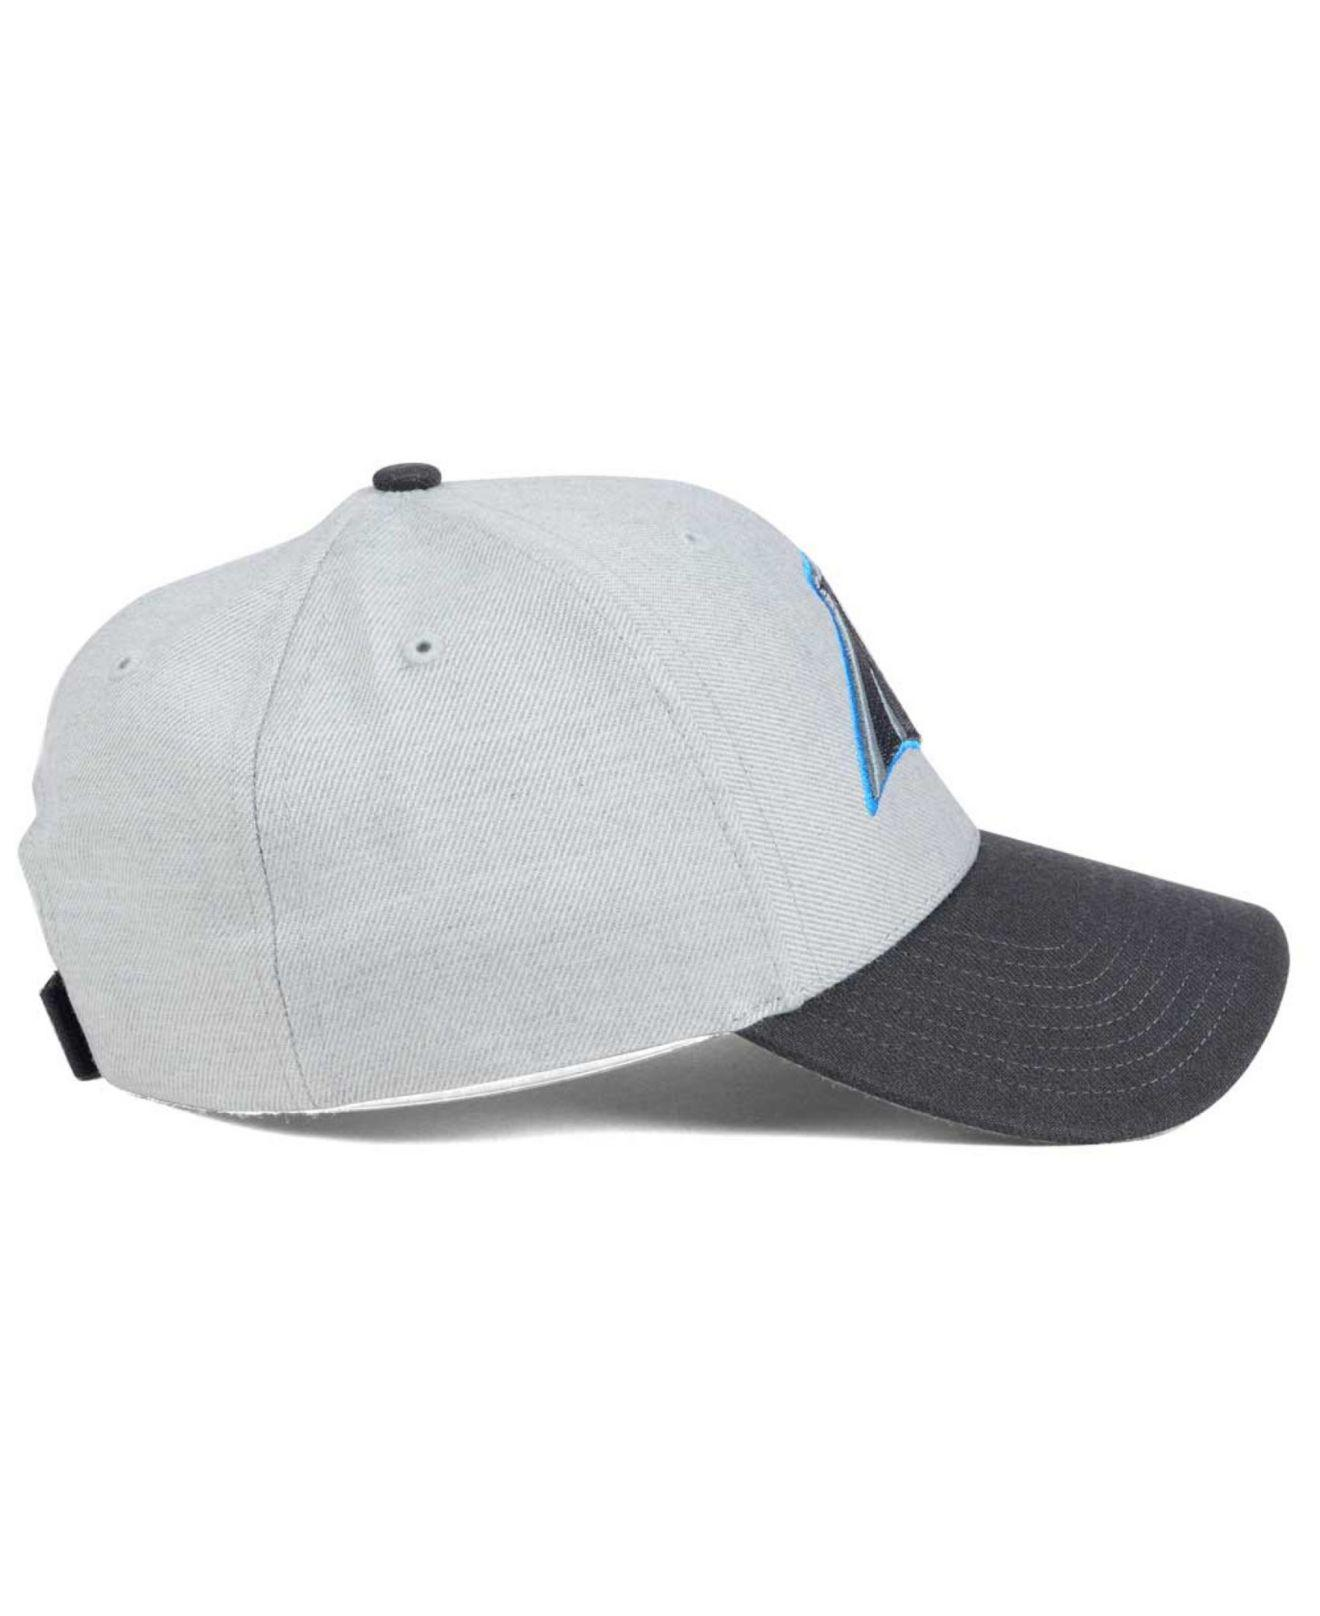 newest 41460 b238f clearance los angeles rams 47 nfl double time 47 mvp cap a879c 2ac8a  new  style lyst 47 brand barksdale mvp cap in gray for men 28ff8 2aebc